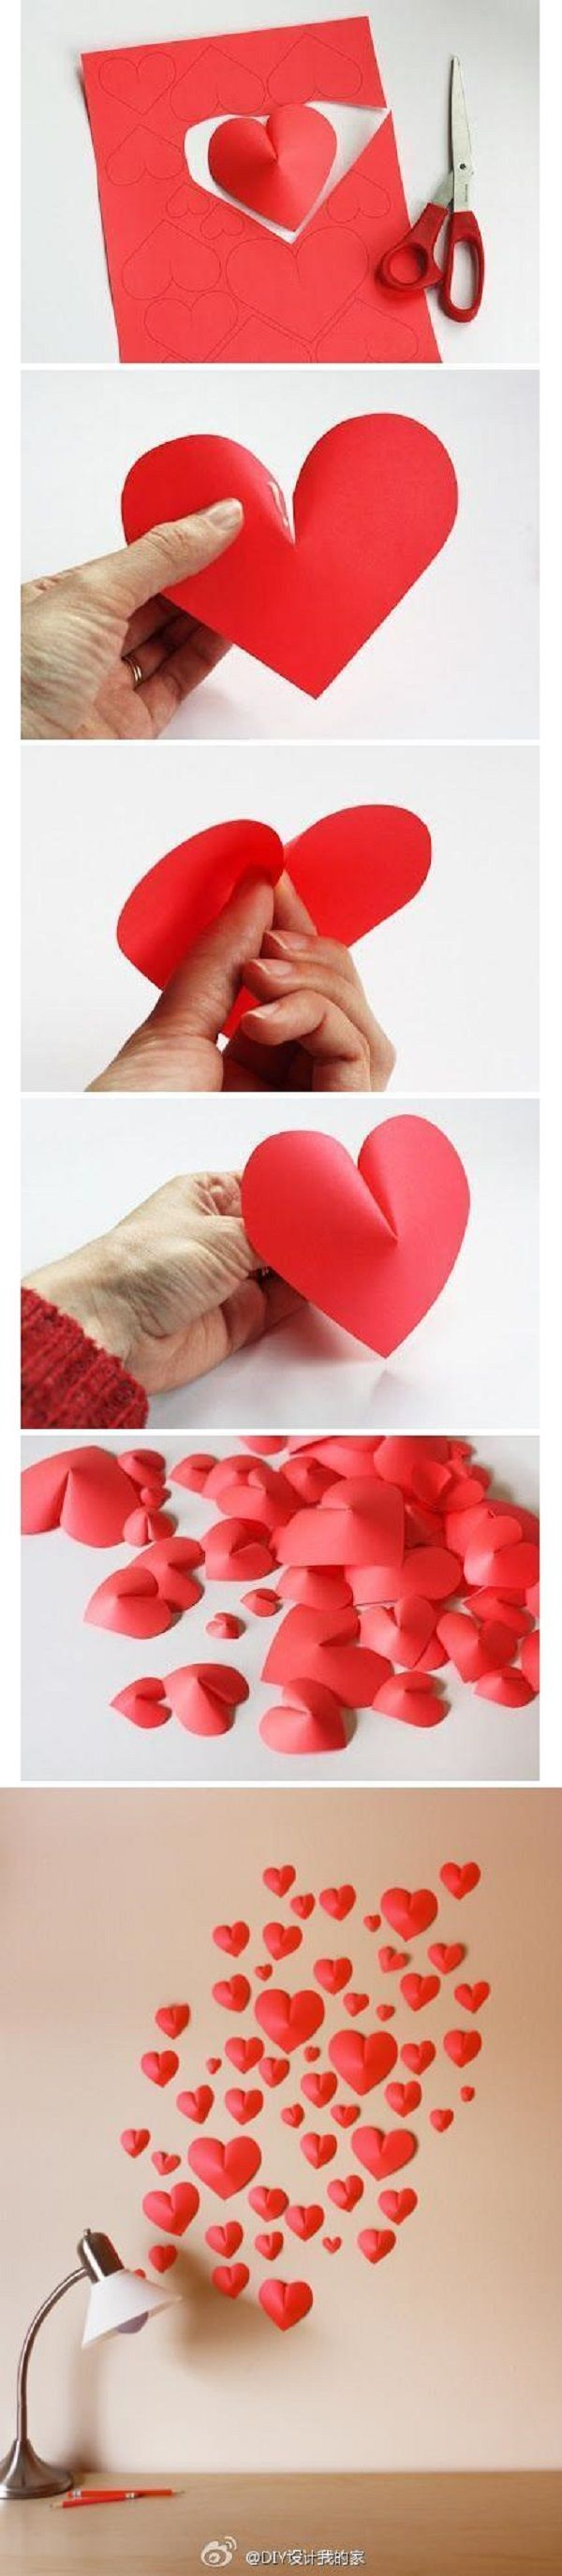 DIY Easy 3D Paper Heart